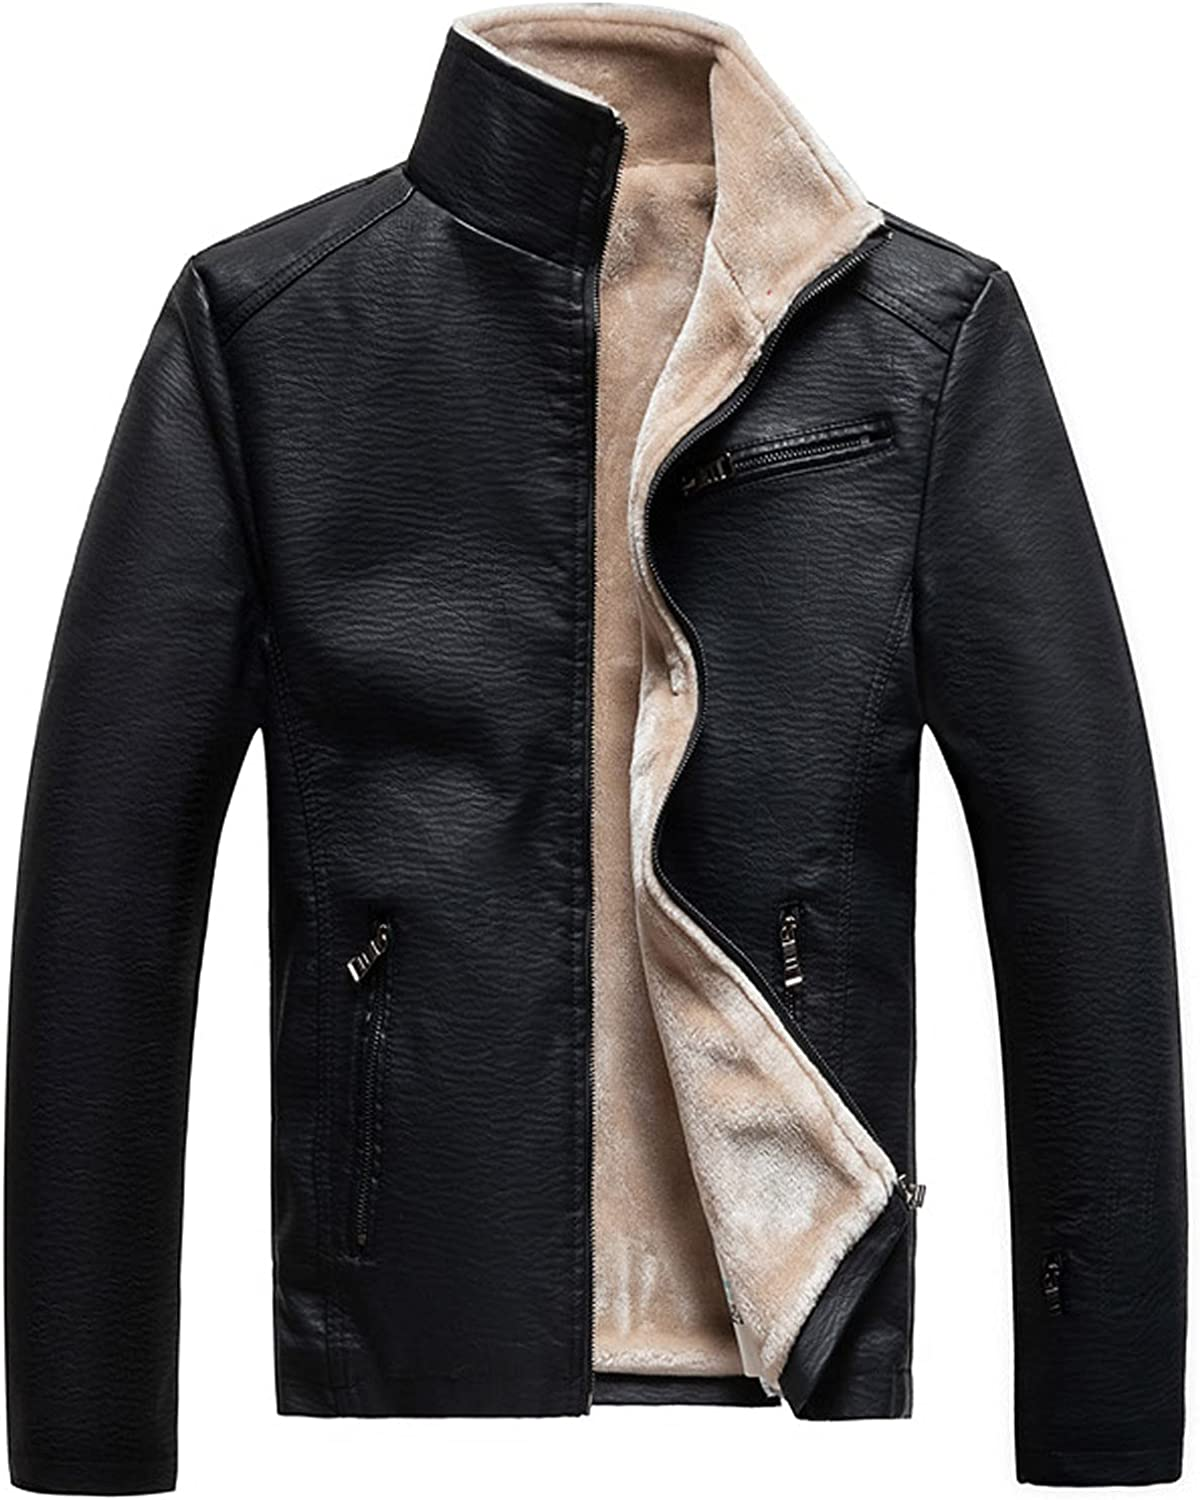 Men's Winter Plush Fleece Stand Collar Faux Leather Motorcycle Long Sleeve Jacket Zipper Design Pocket Outer Jackets